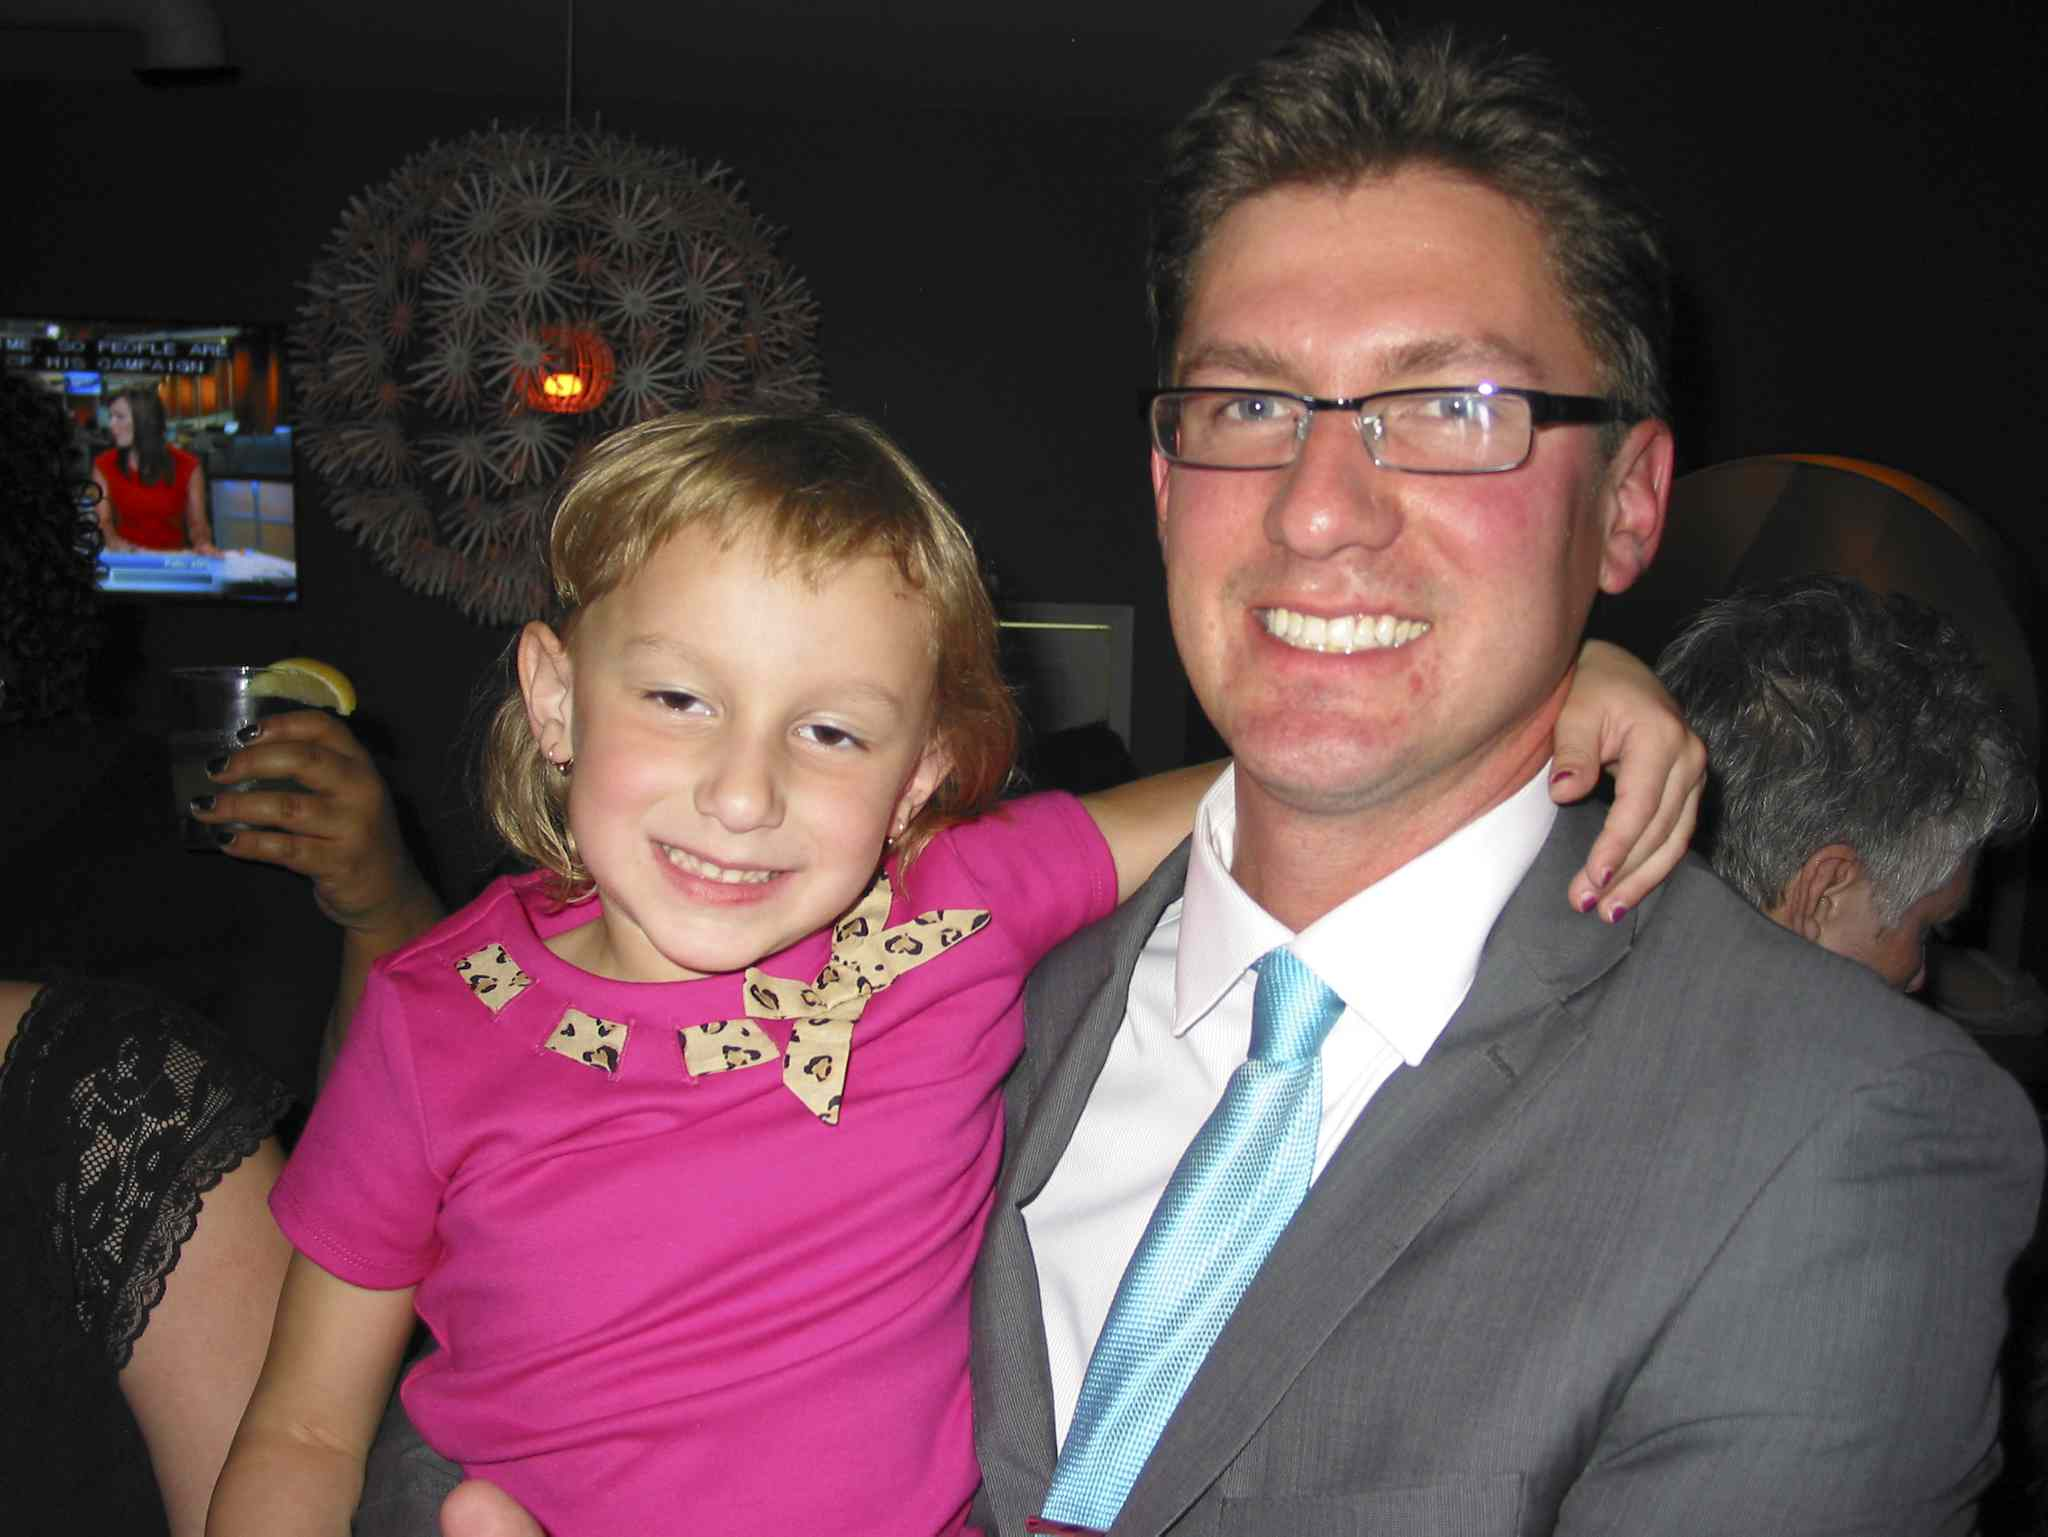 Matt Allard, newly elected city councillor for St. Boniface, holds his daughter Camille, 5, at his election night celebration.